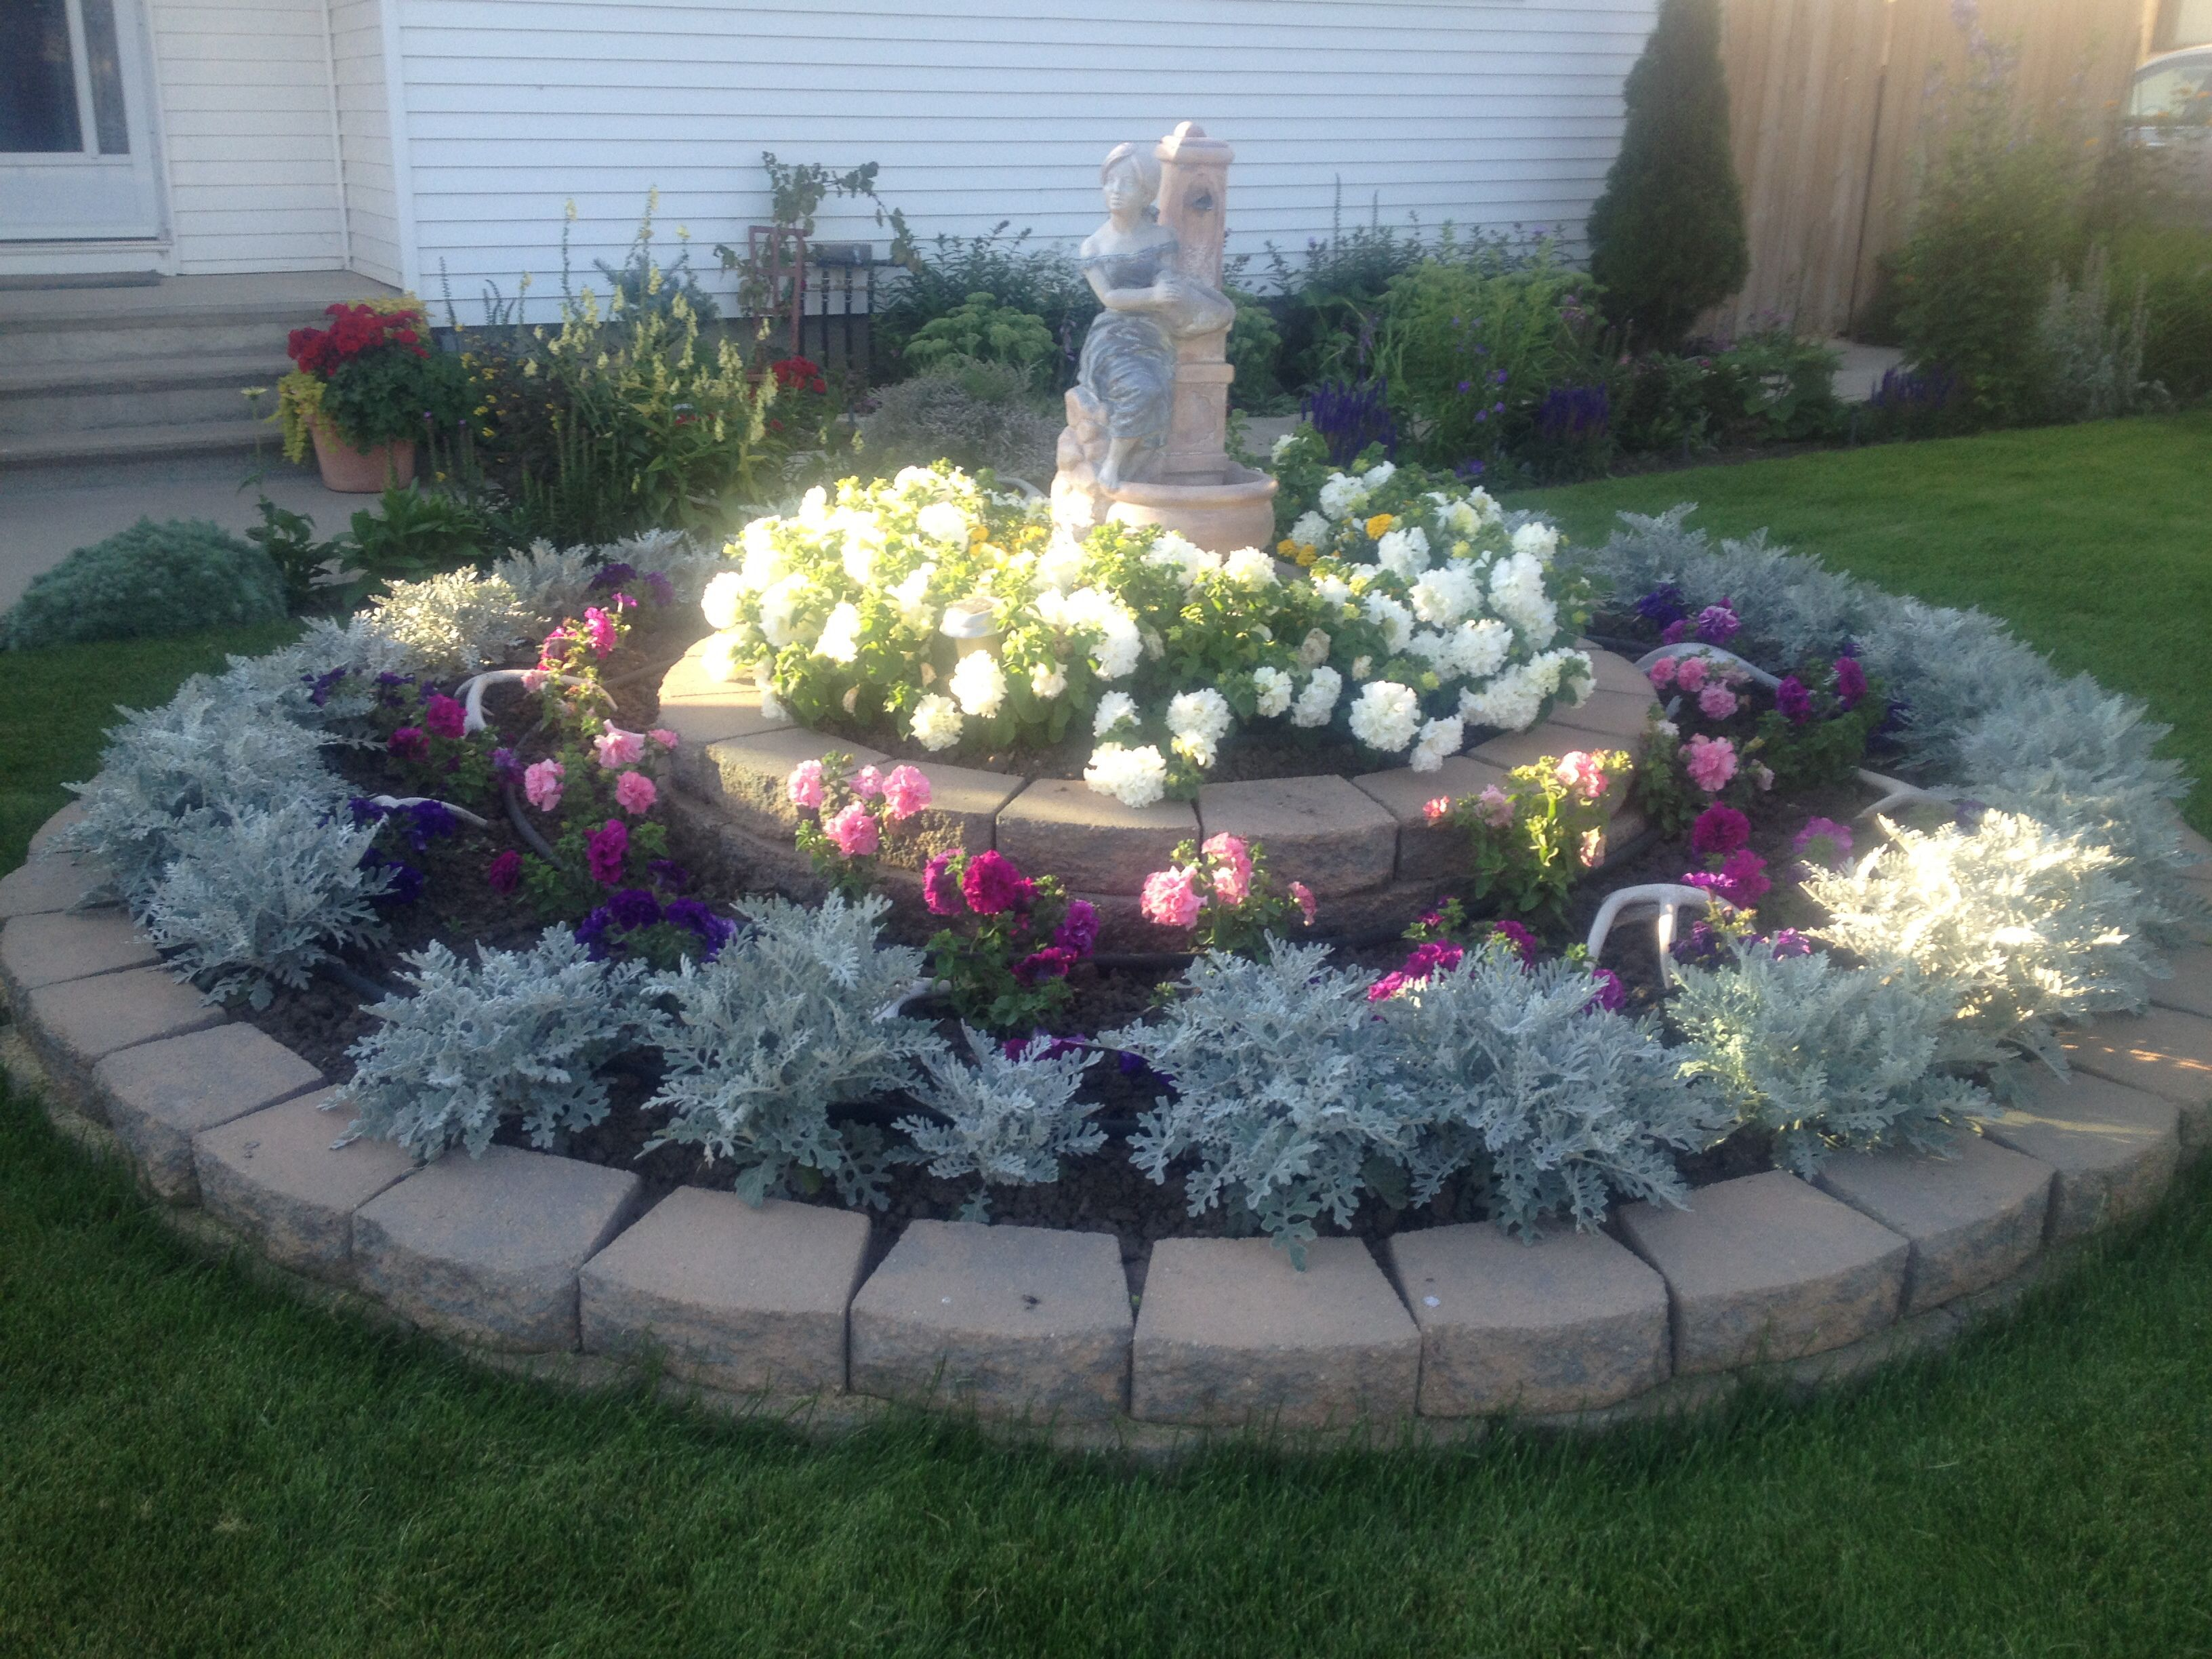 Circle flower garden in front of my house garden decor for Flower designs for yards